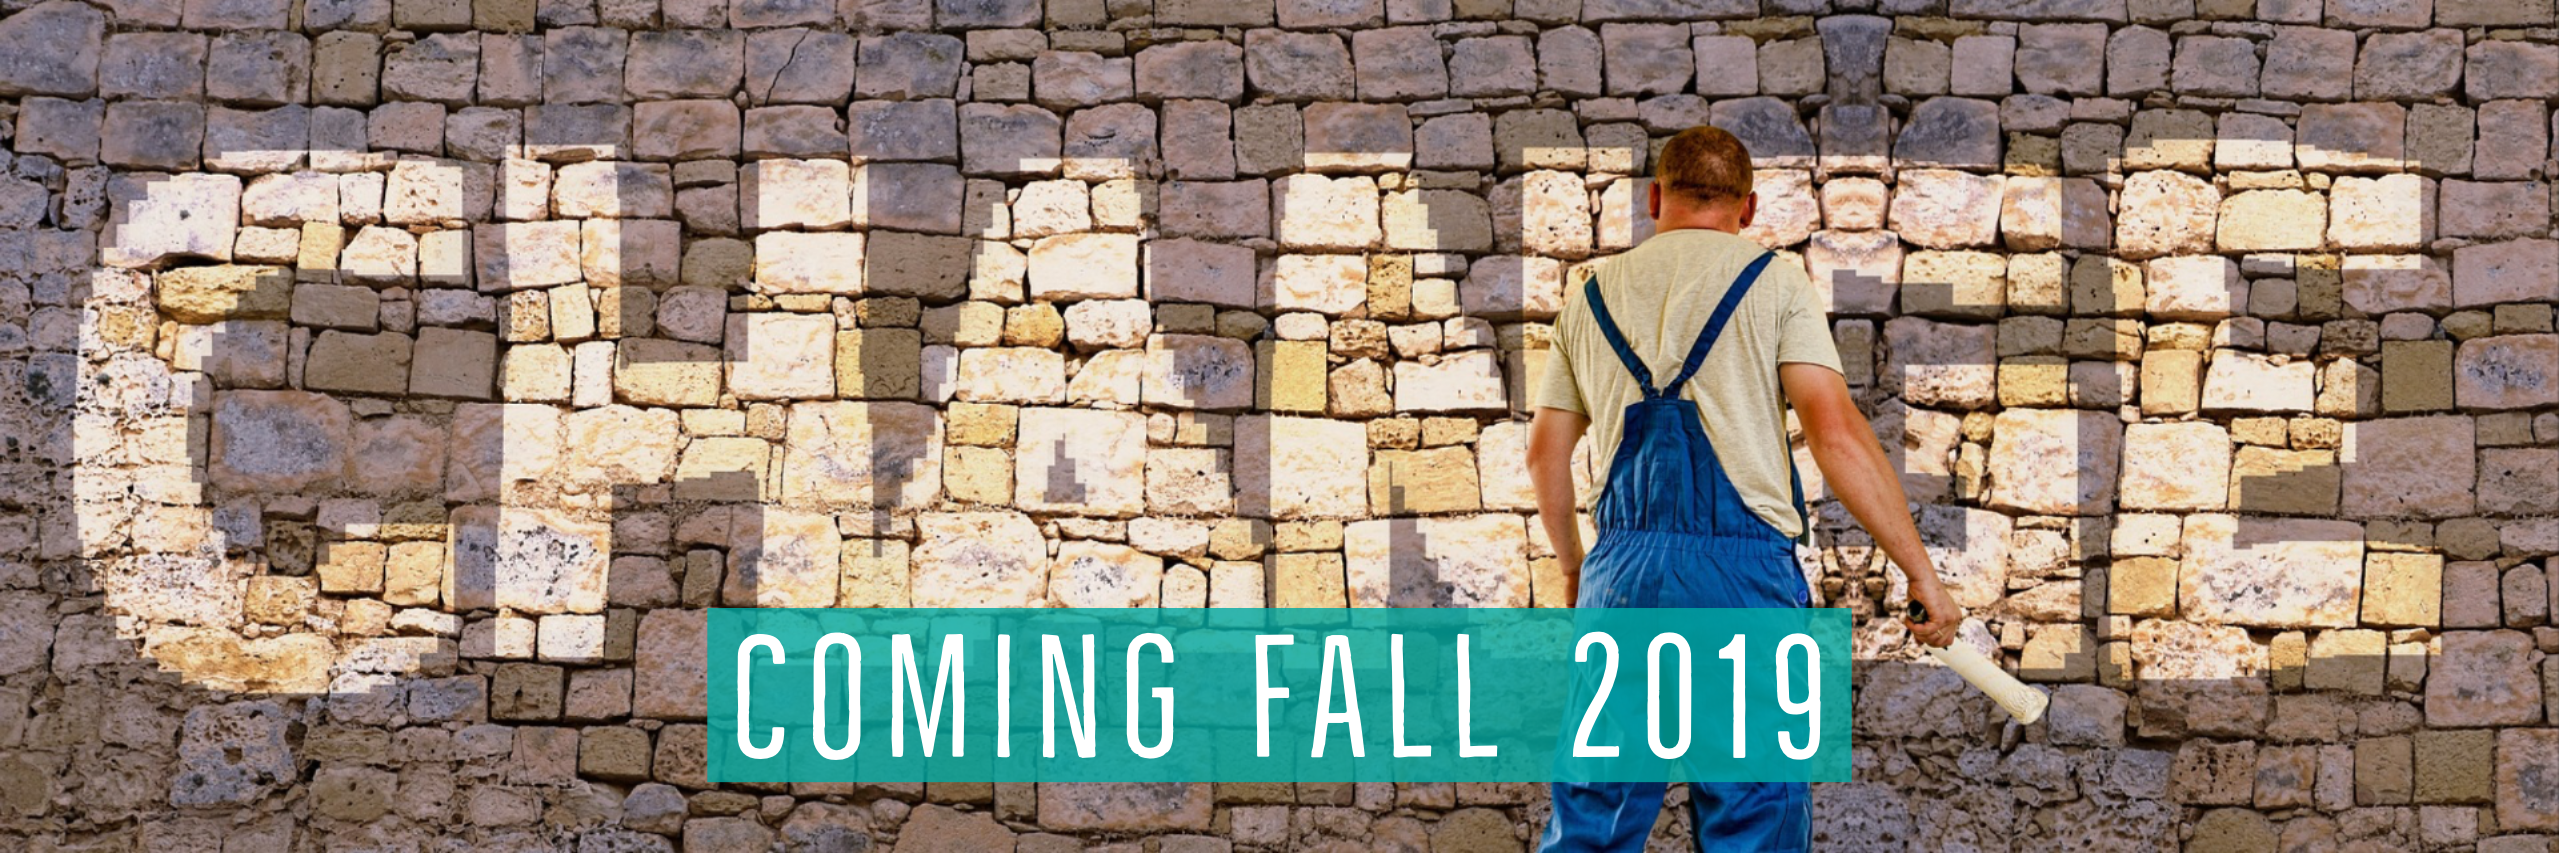 Changes coming – Fall 2019 – Stacey Sansom Designs